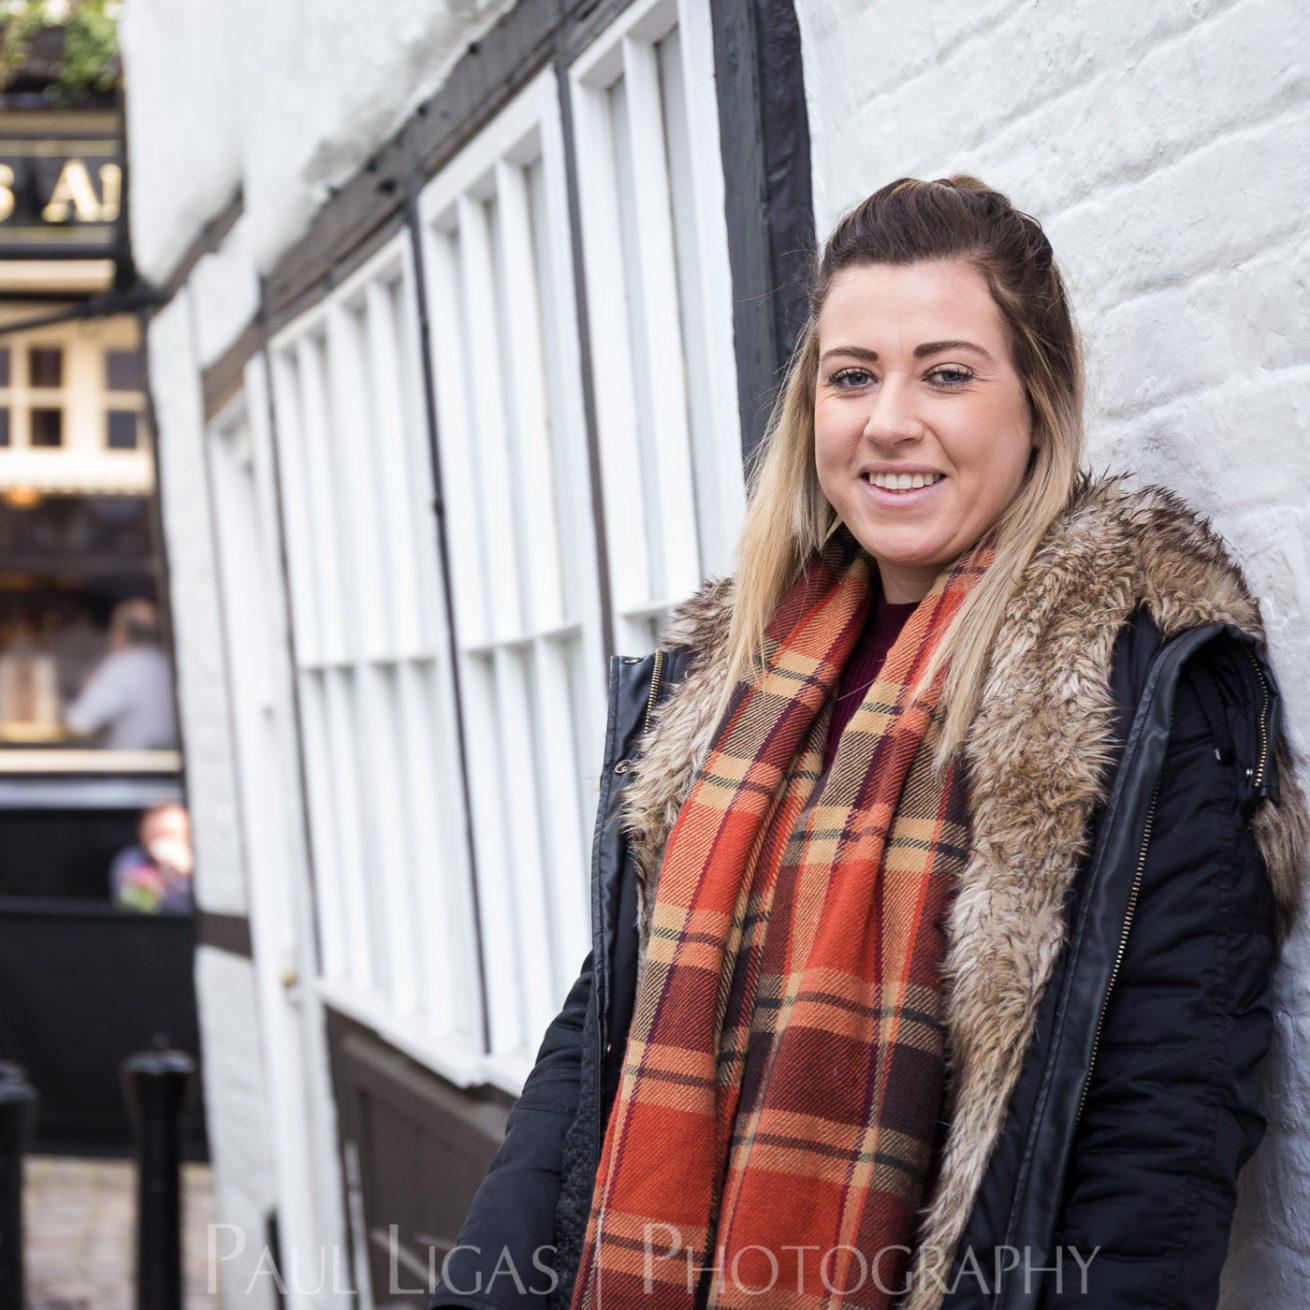 Cogs Accountancy Services, Windsor, Berkshire portrait photographer herefordshire photography 6282